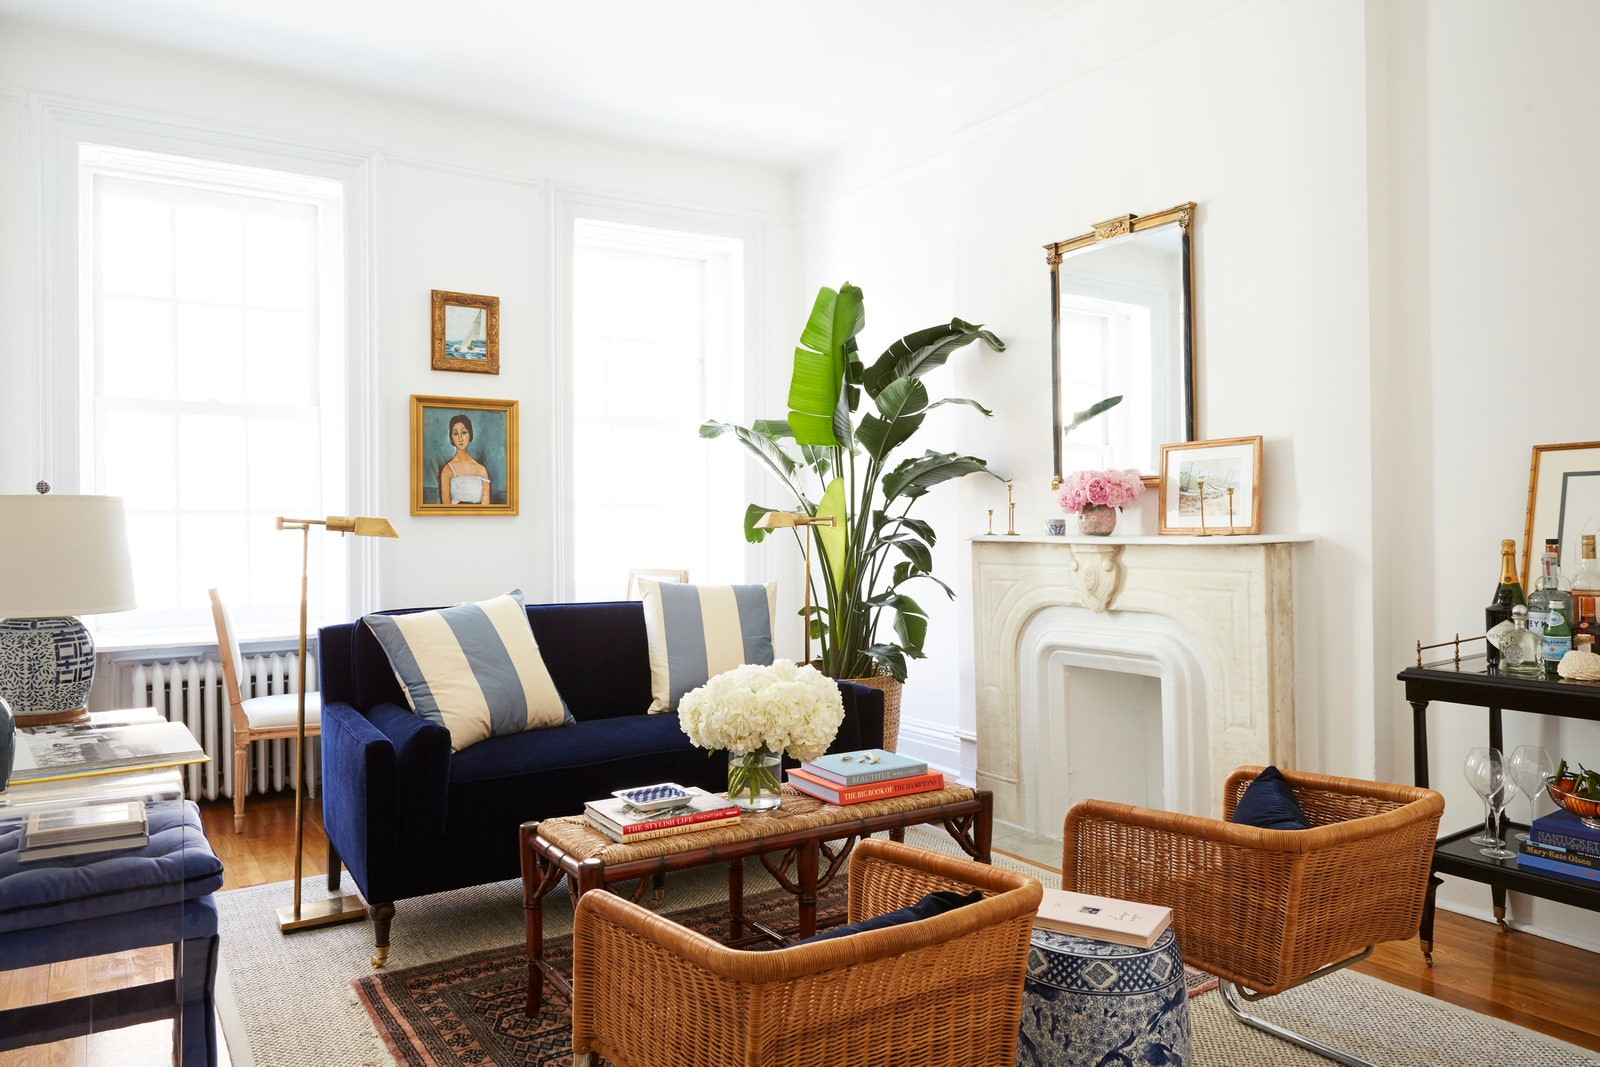 4 Tips to Consider Before Buying Sofas for Your Living Room